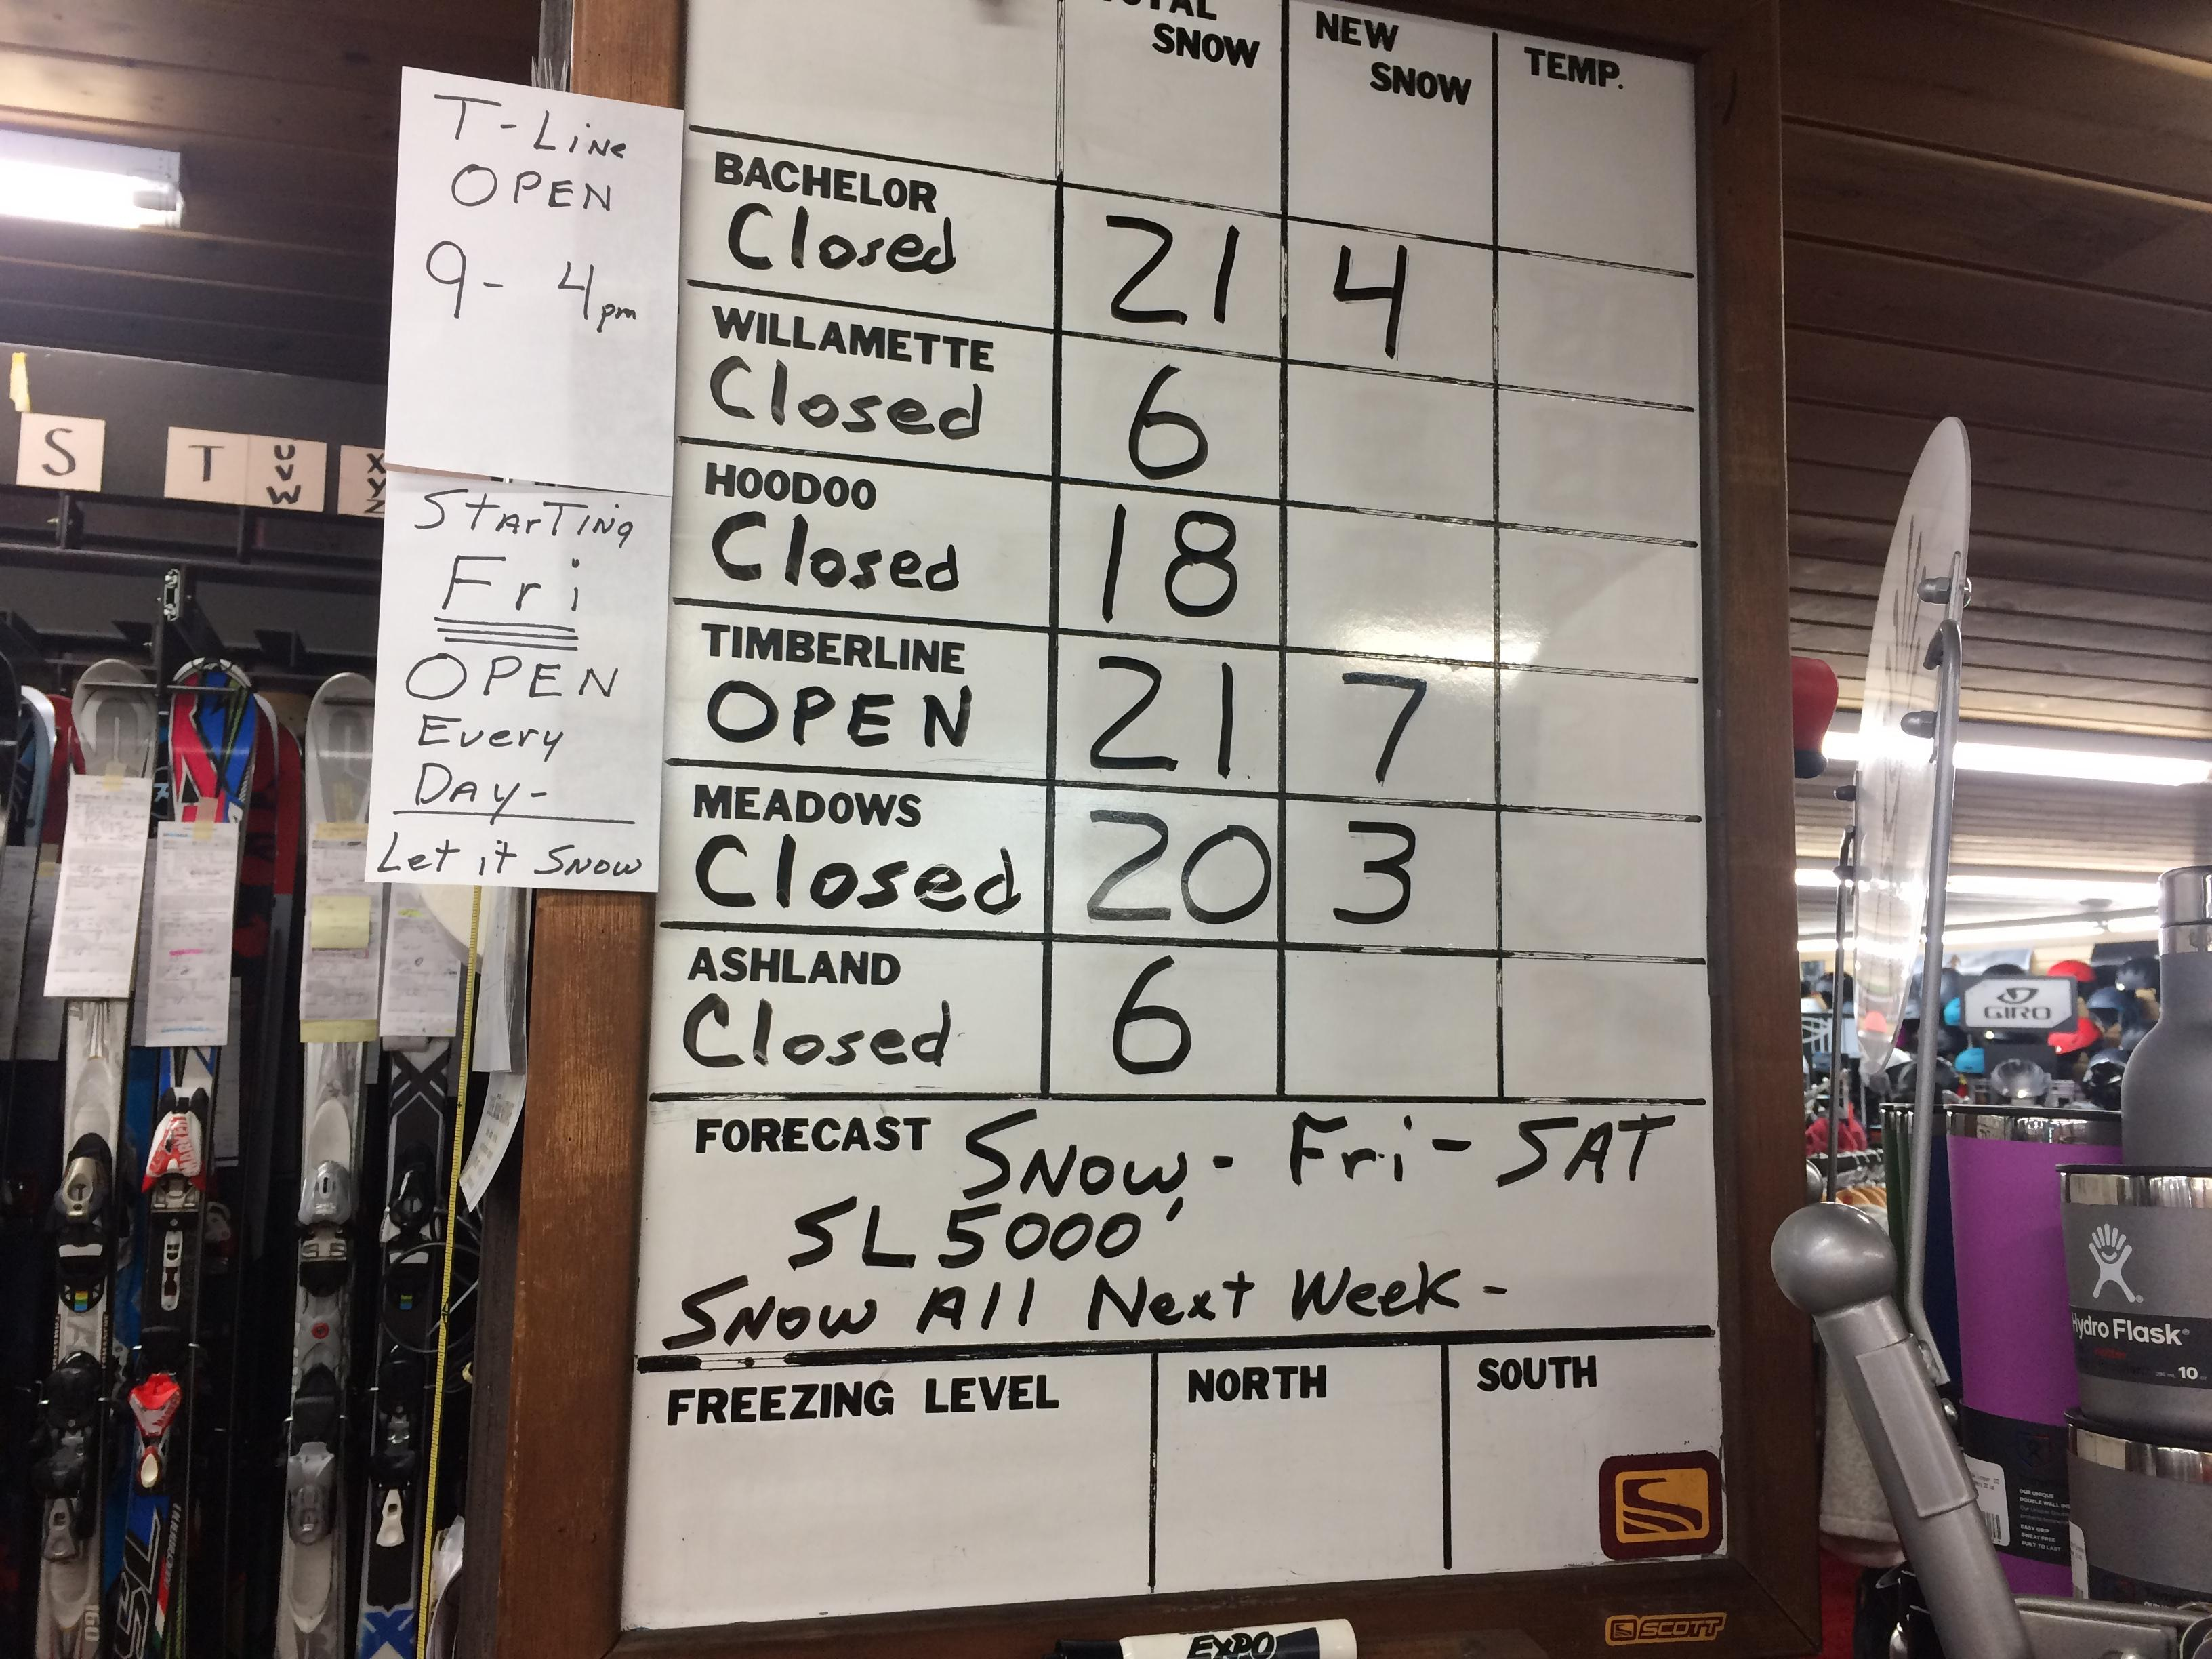 Berg's Ski Shop sees winter rush before snow season begins